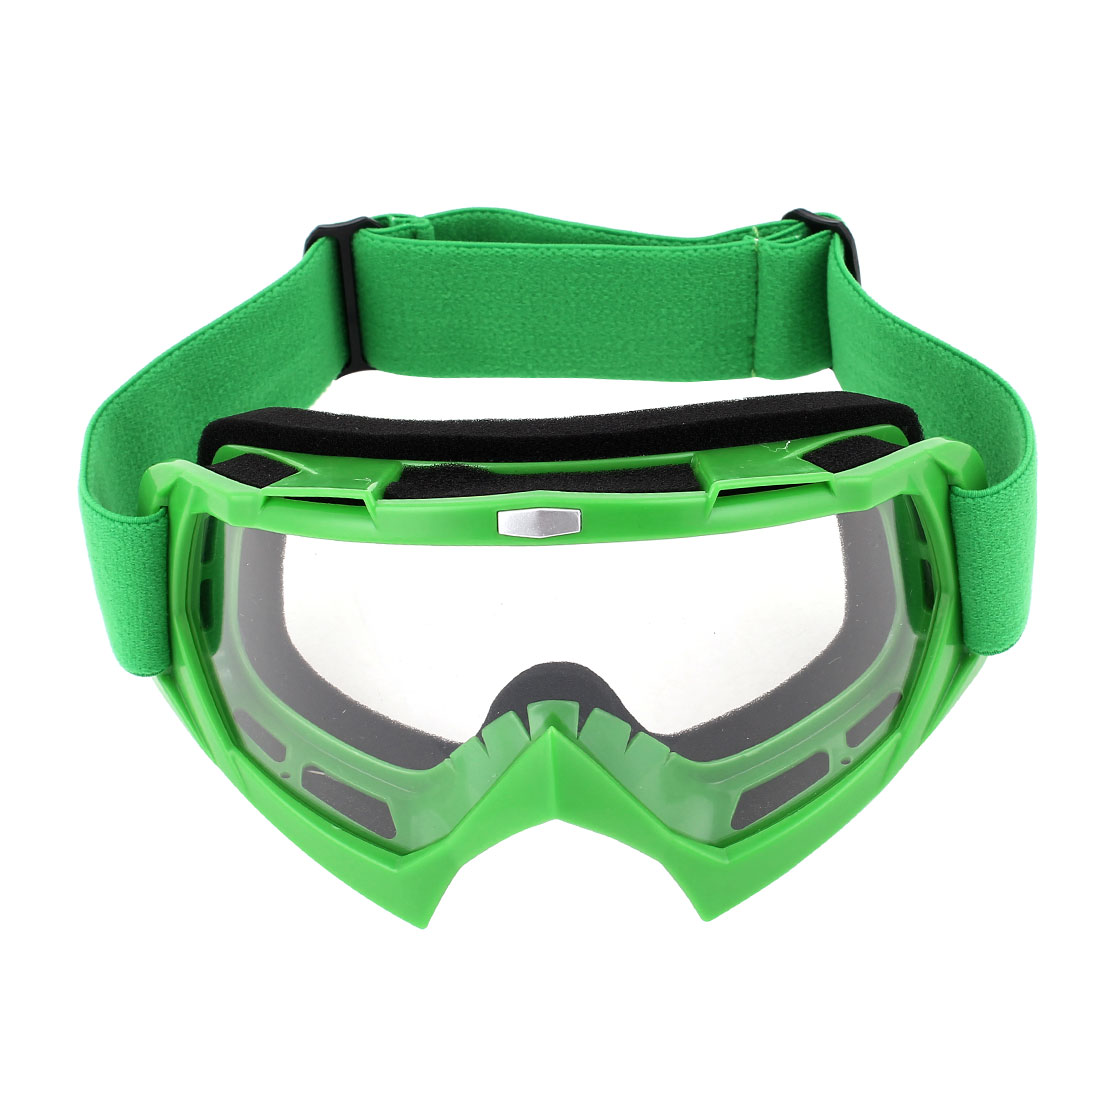 Unique Bargains Plastic Frame Wide Lens Adjustable Elastic Strap Eyewear Ski Goggles by Unique-Bargains